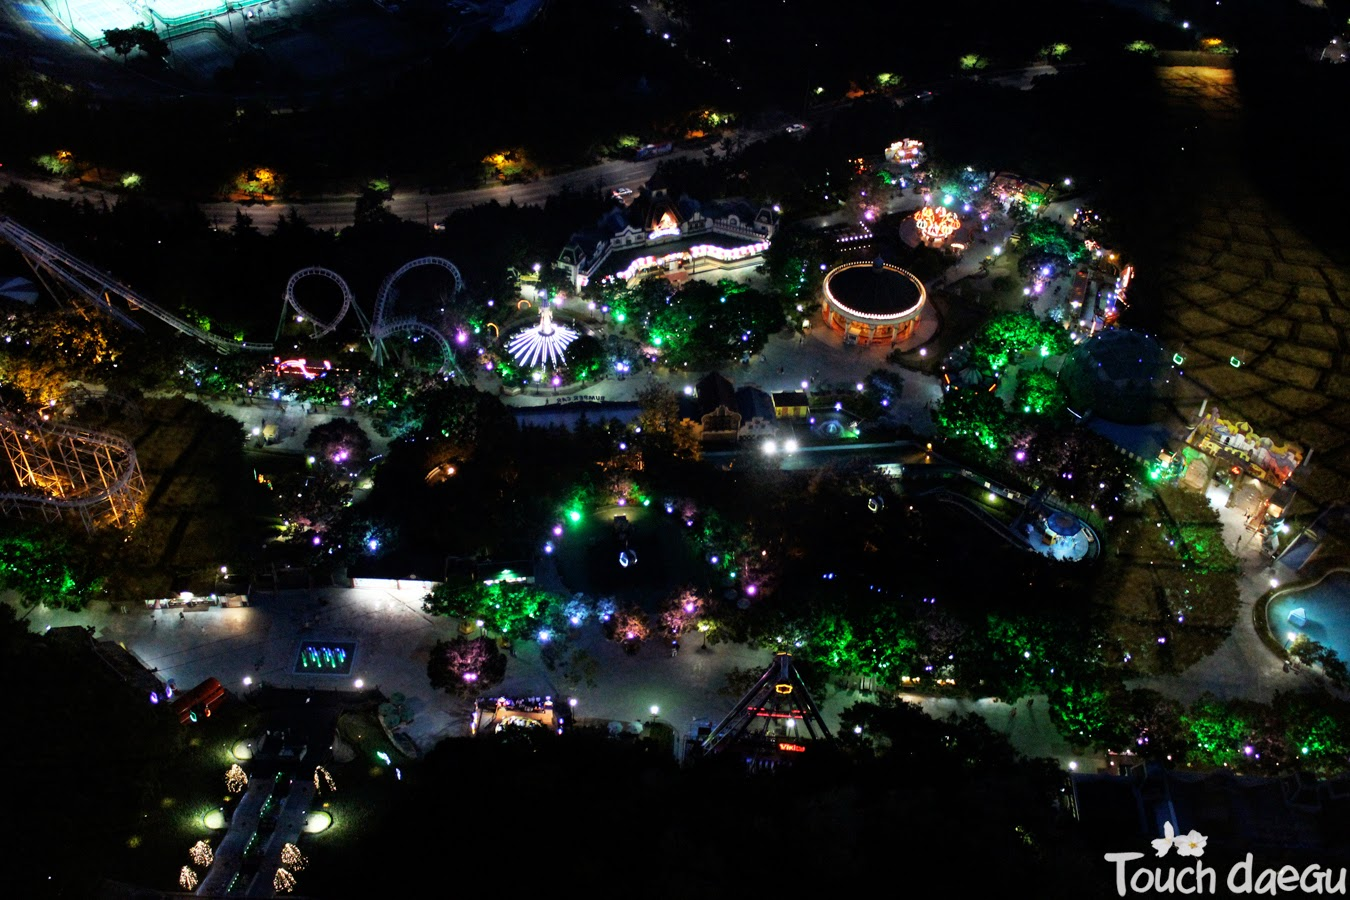 The night view of E-world